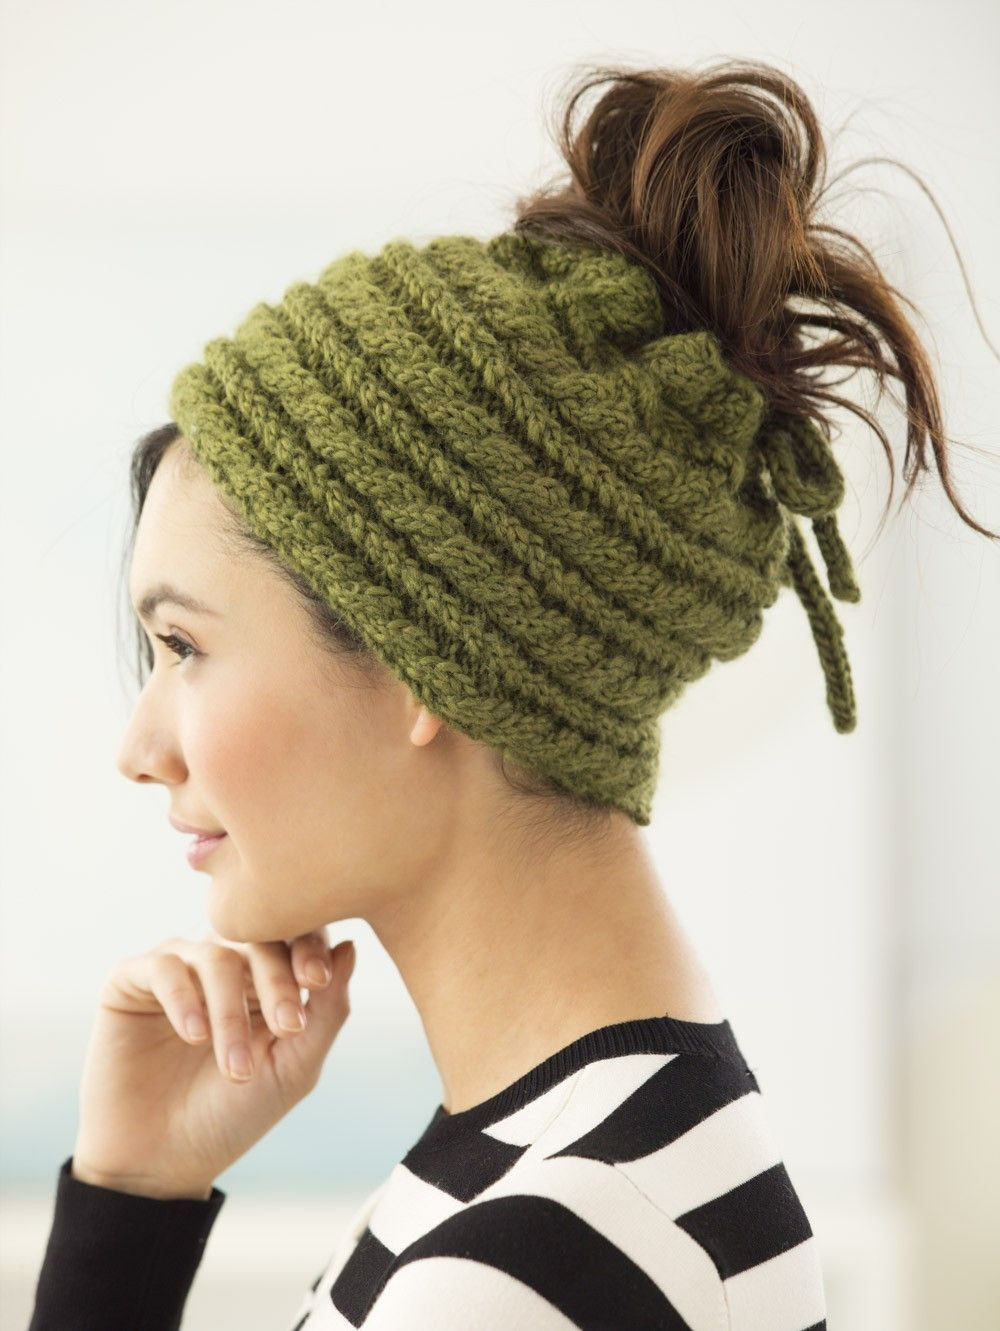 Bun Hat (Knit) - Lion Brand Yarn | Crochet Hats (Buns) | Pinterest ...